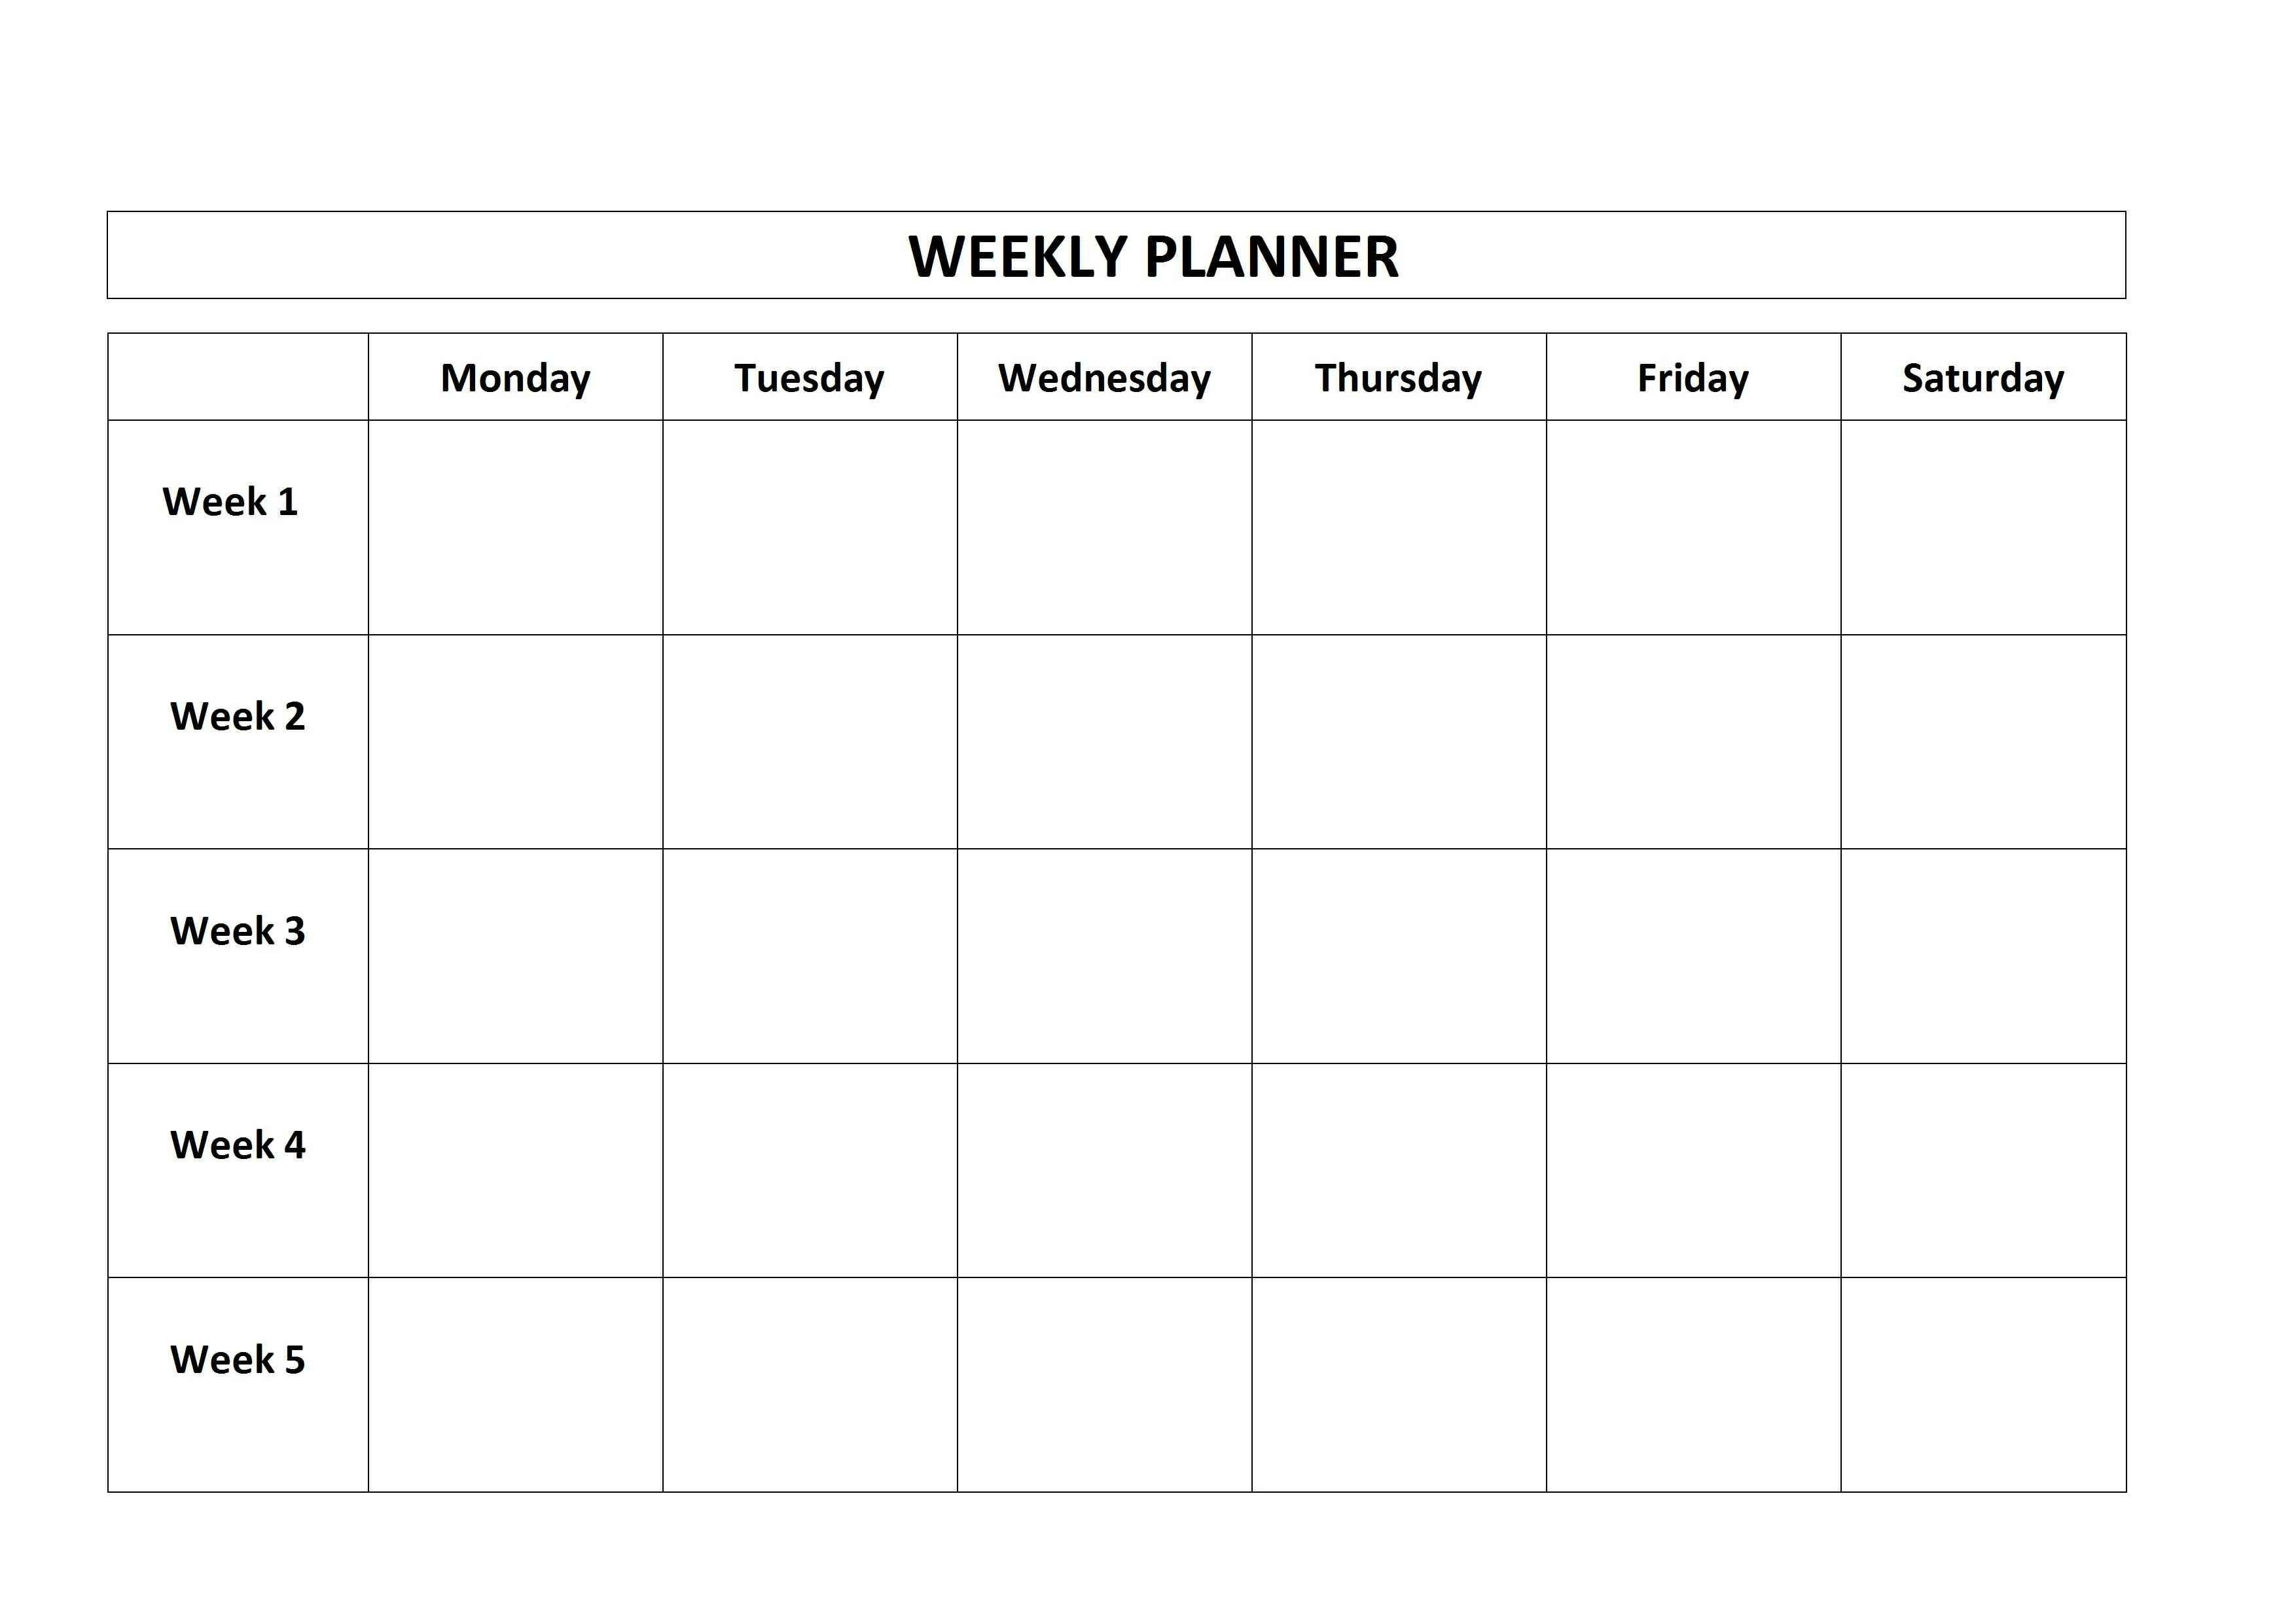 Free Printable Weekly Planner Monday Friday School Calendar-Monday Friday Calendar Template Printable